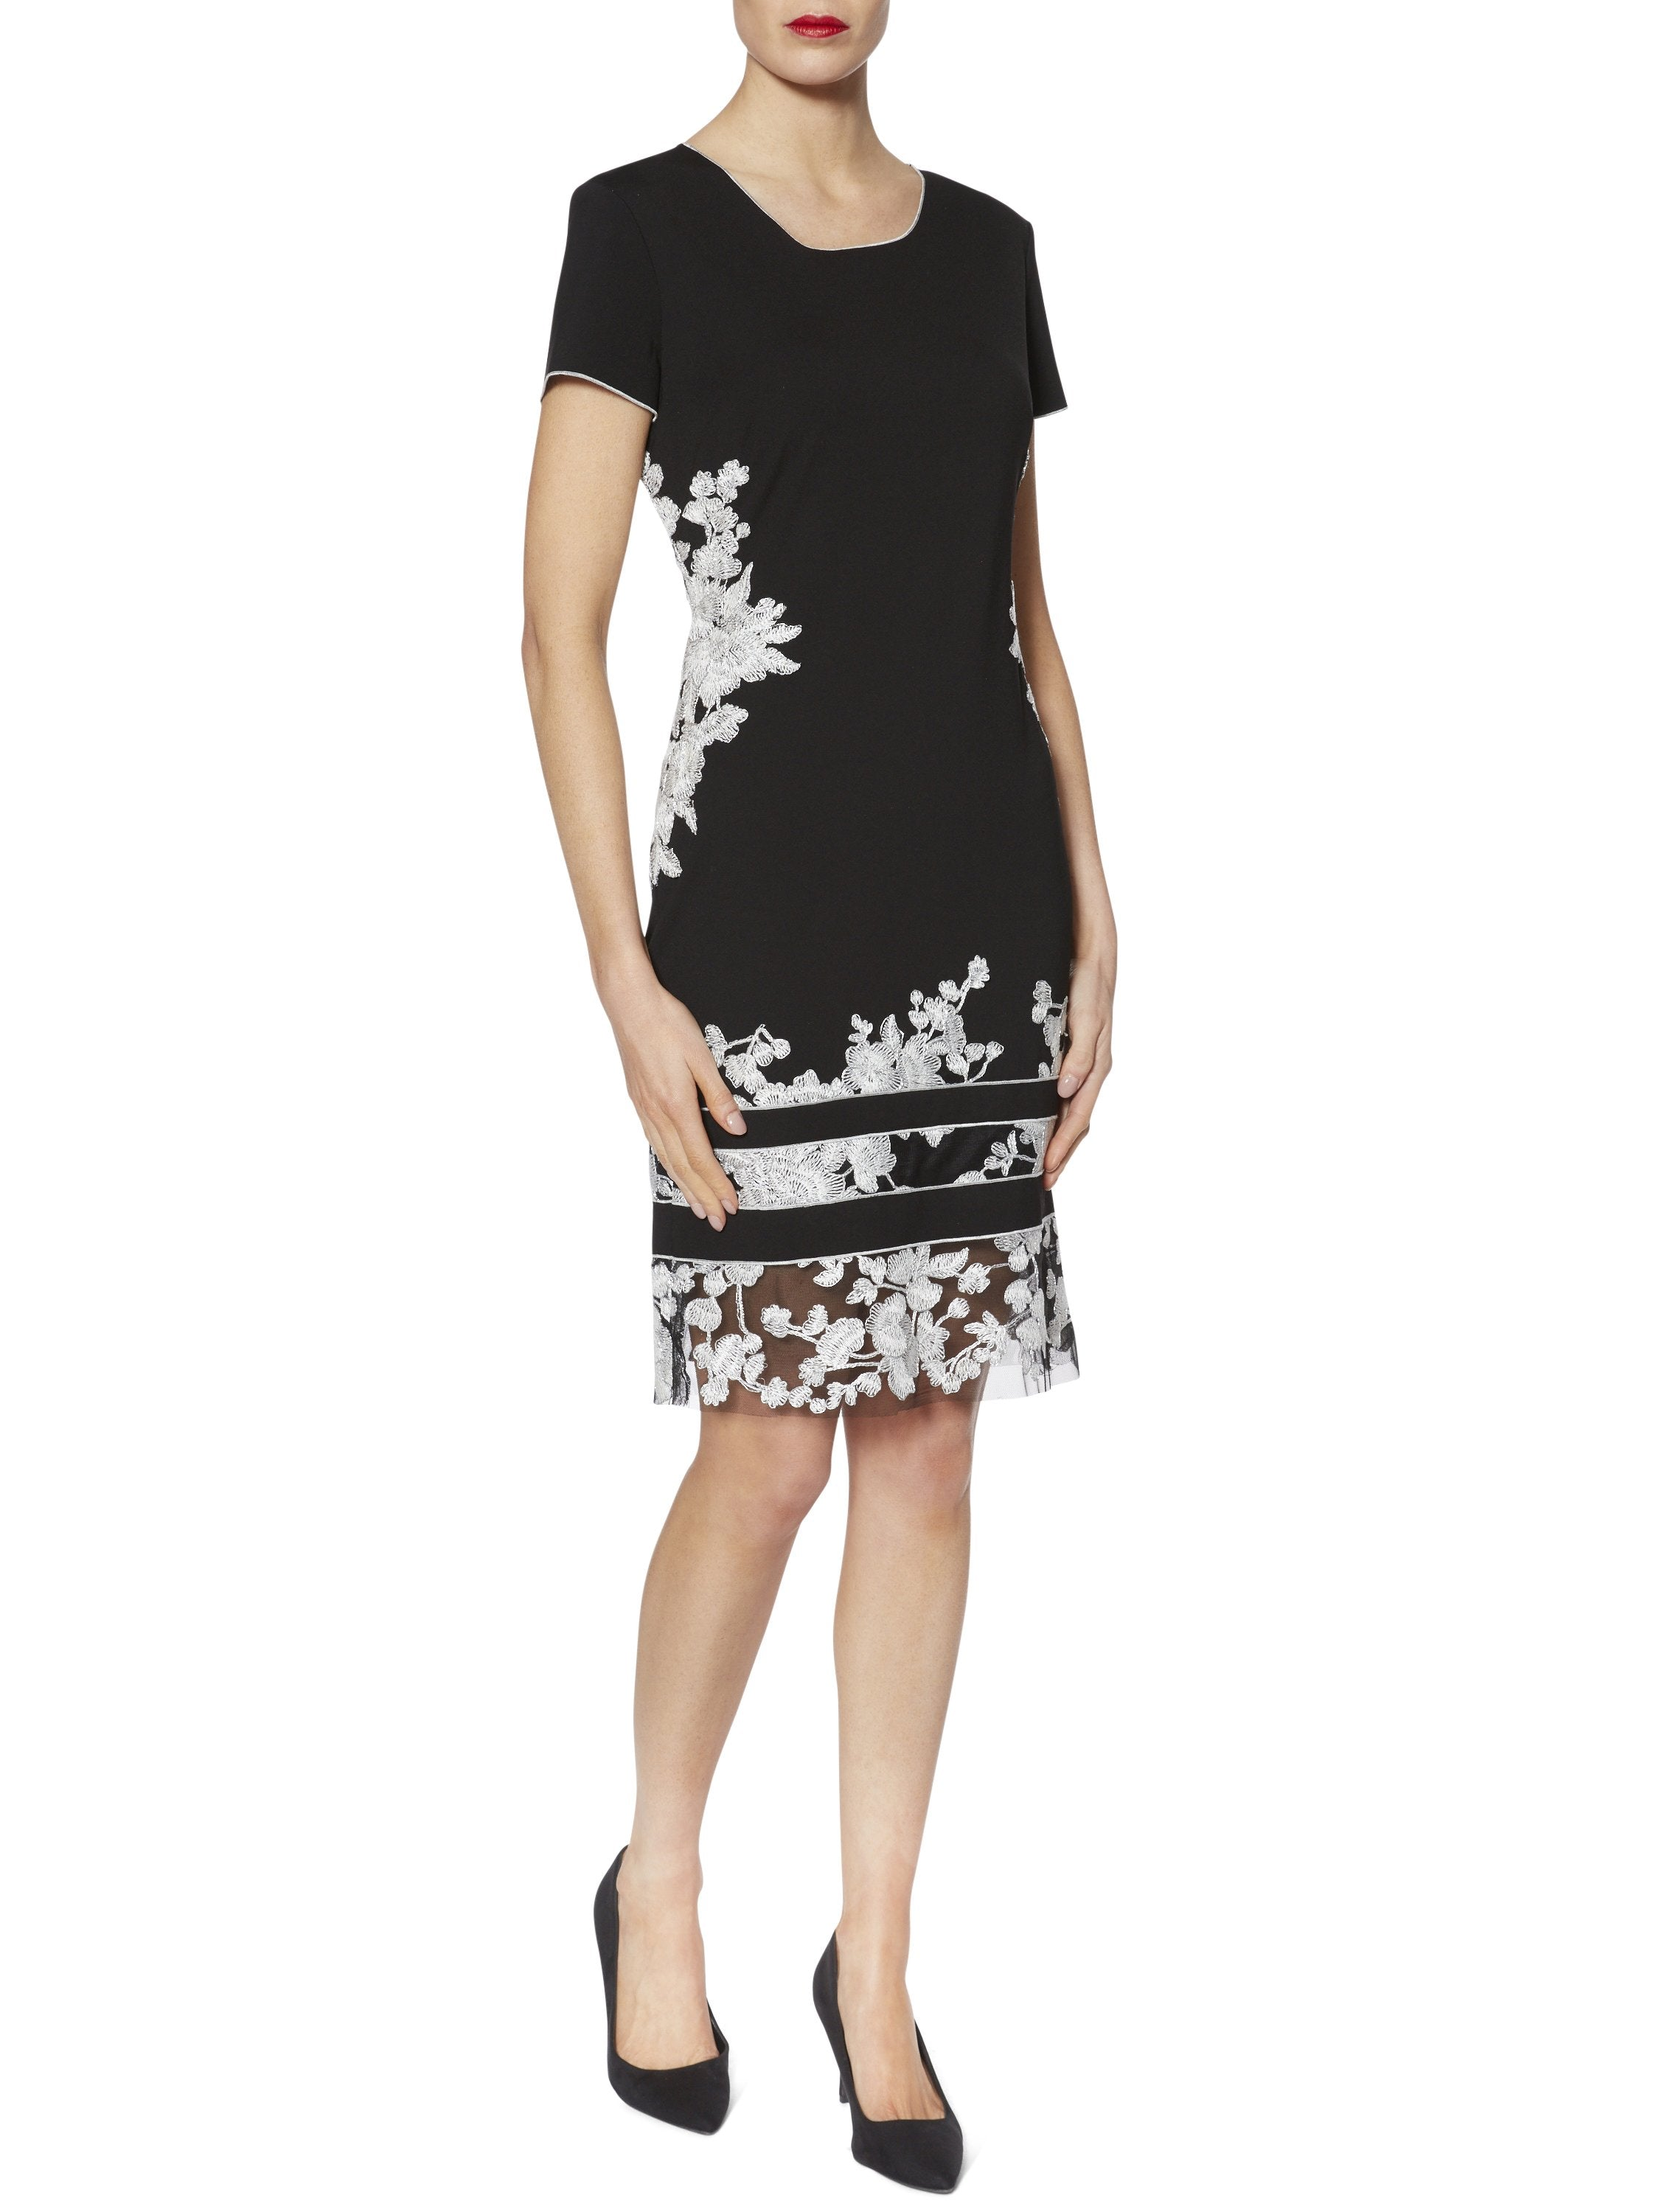 Gina Bacconi Black/White Joyce Floral Embroidered Dress